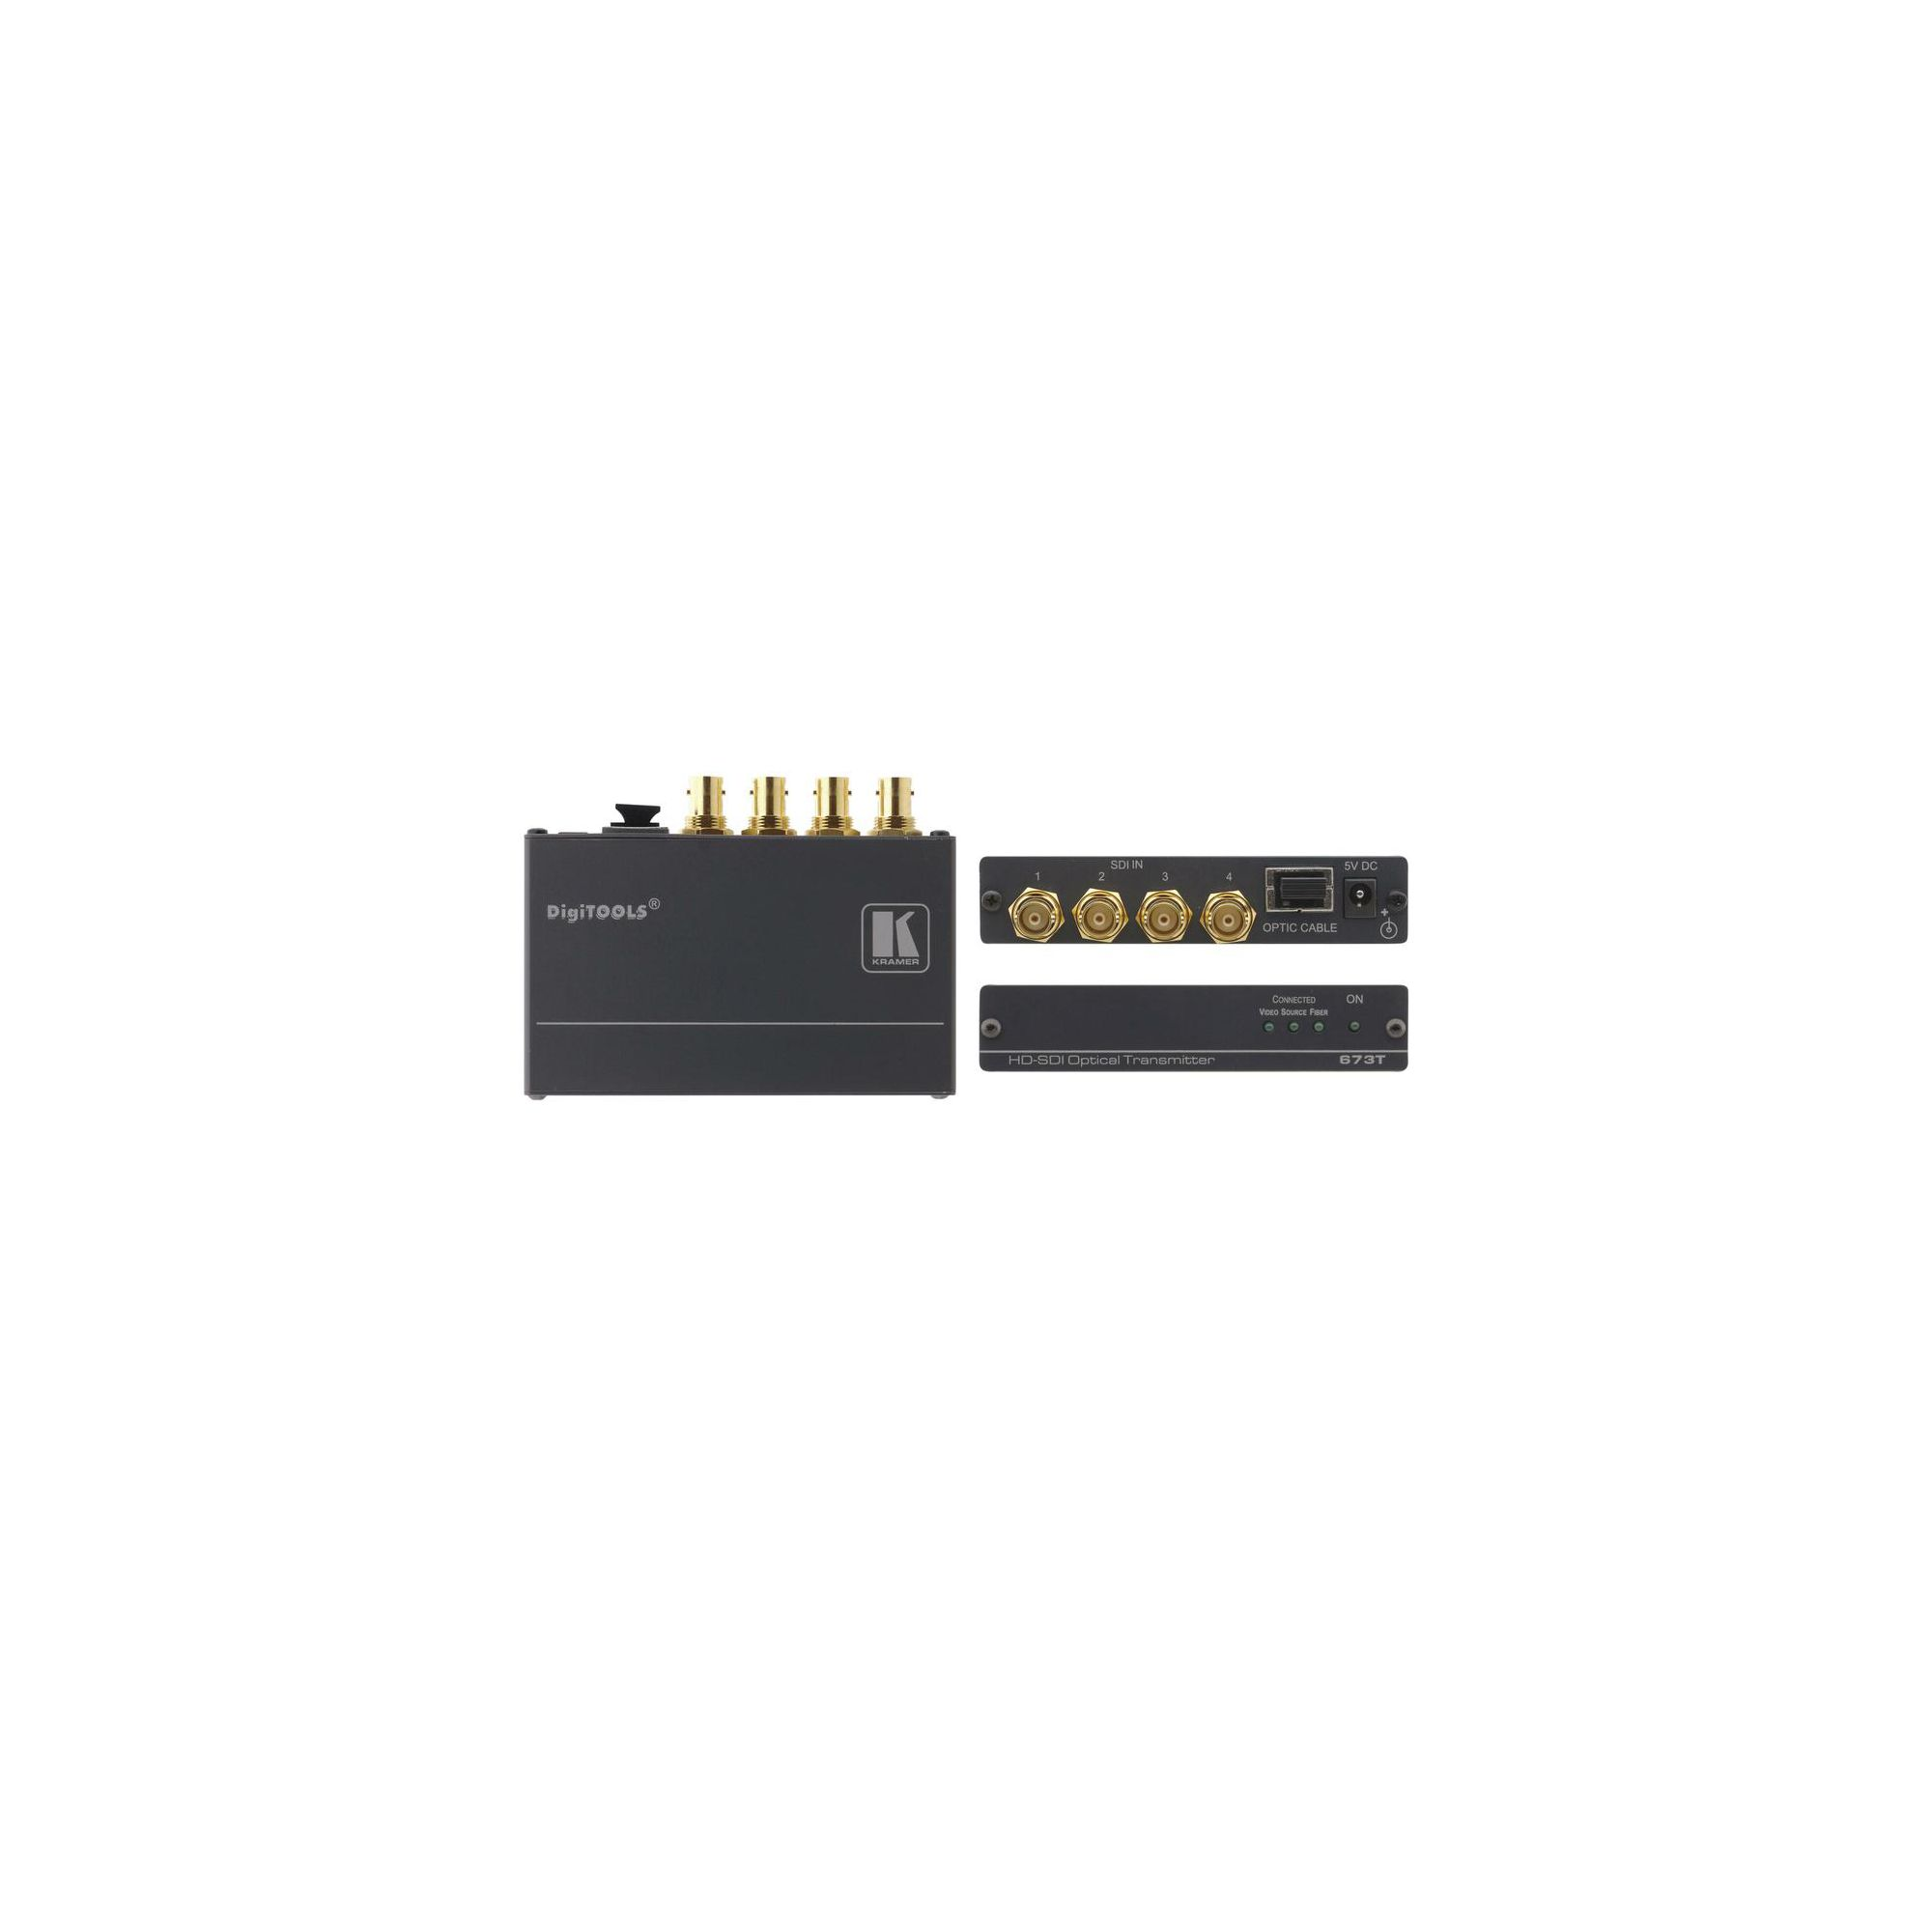 3G HD-SDI 4 CHANNEL OVER FIBRE OPTIC RECEIVER at Tesco Direct